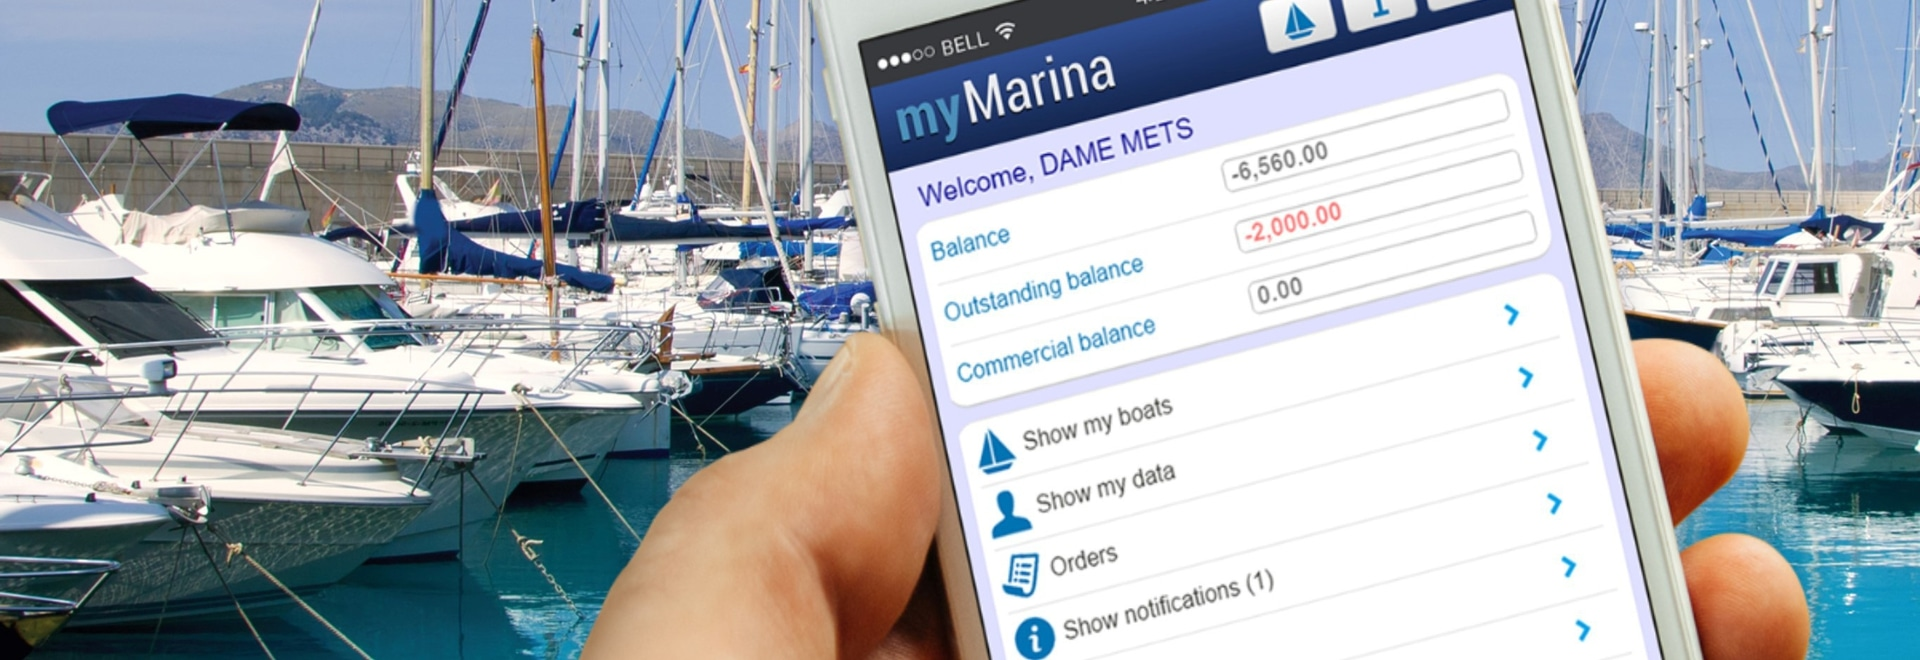 CRM - the heart of marina management software solution